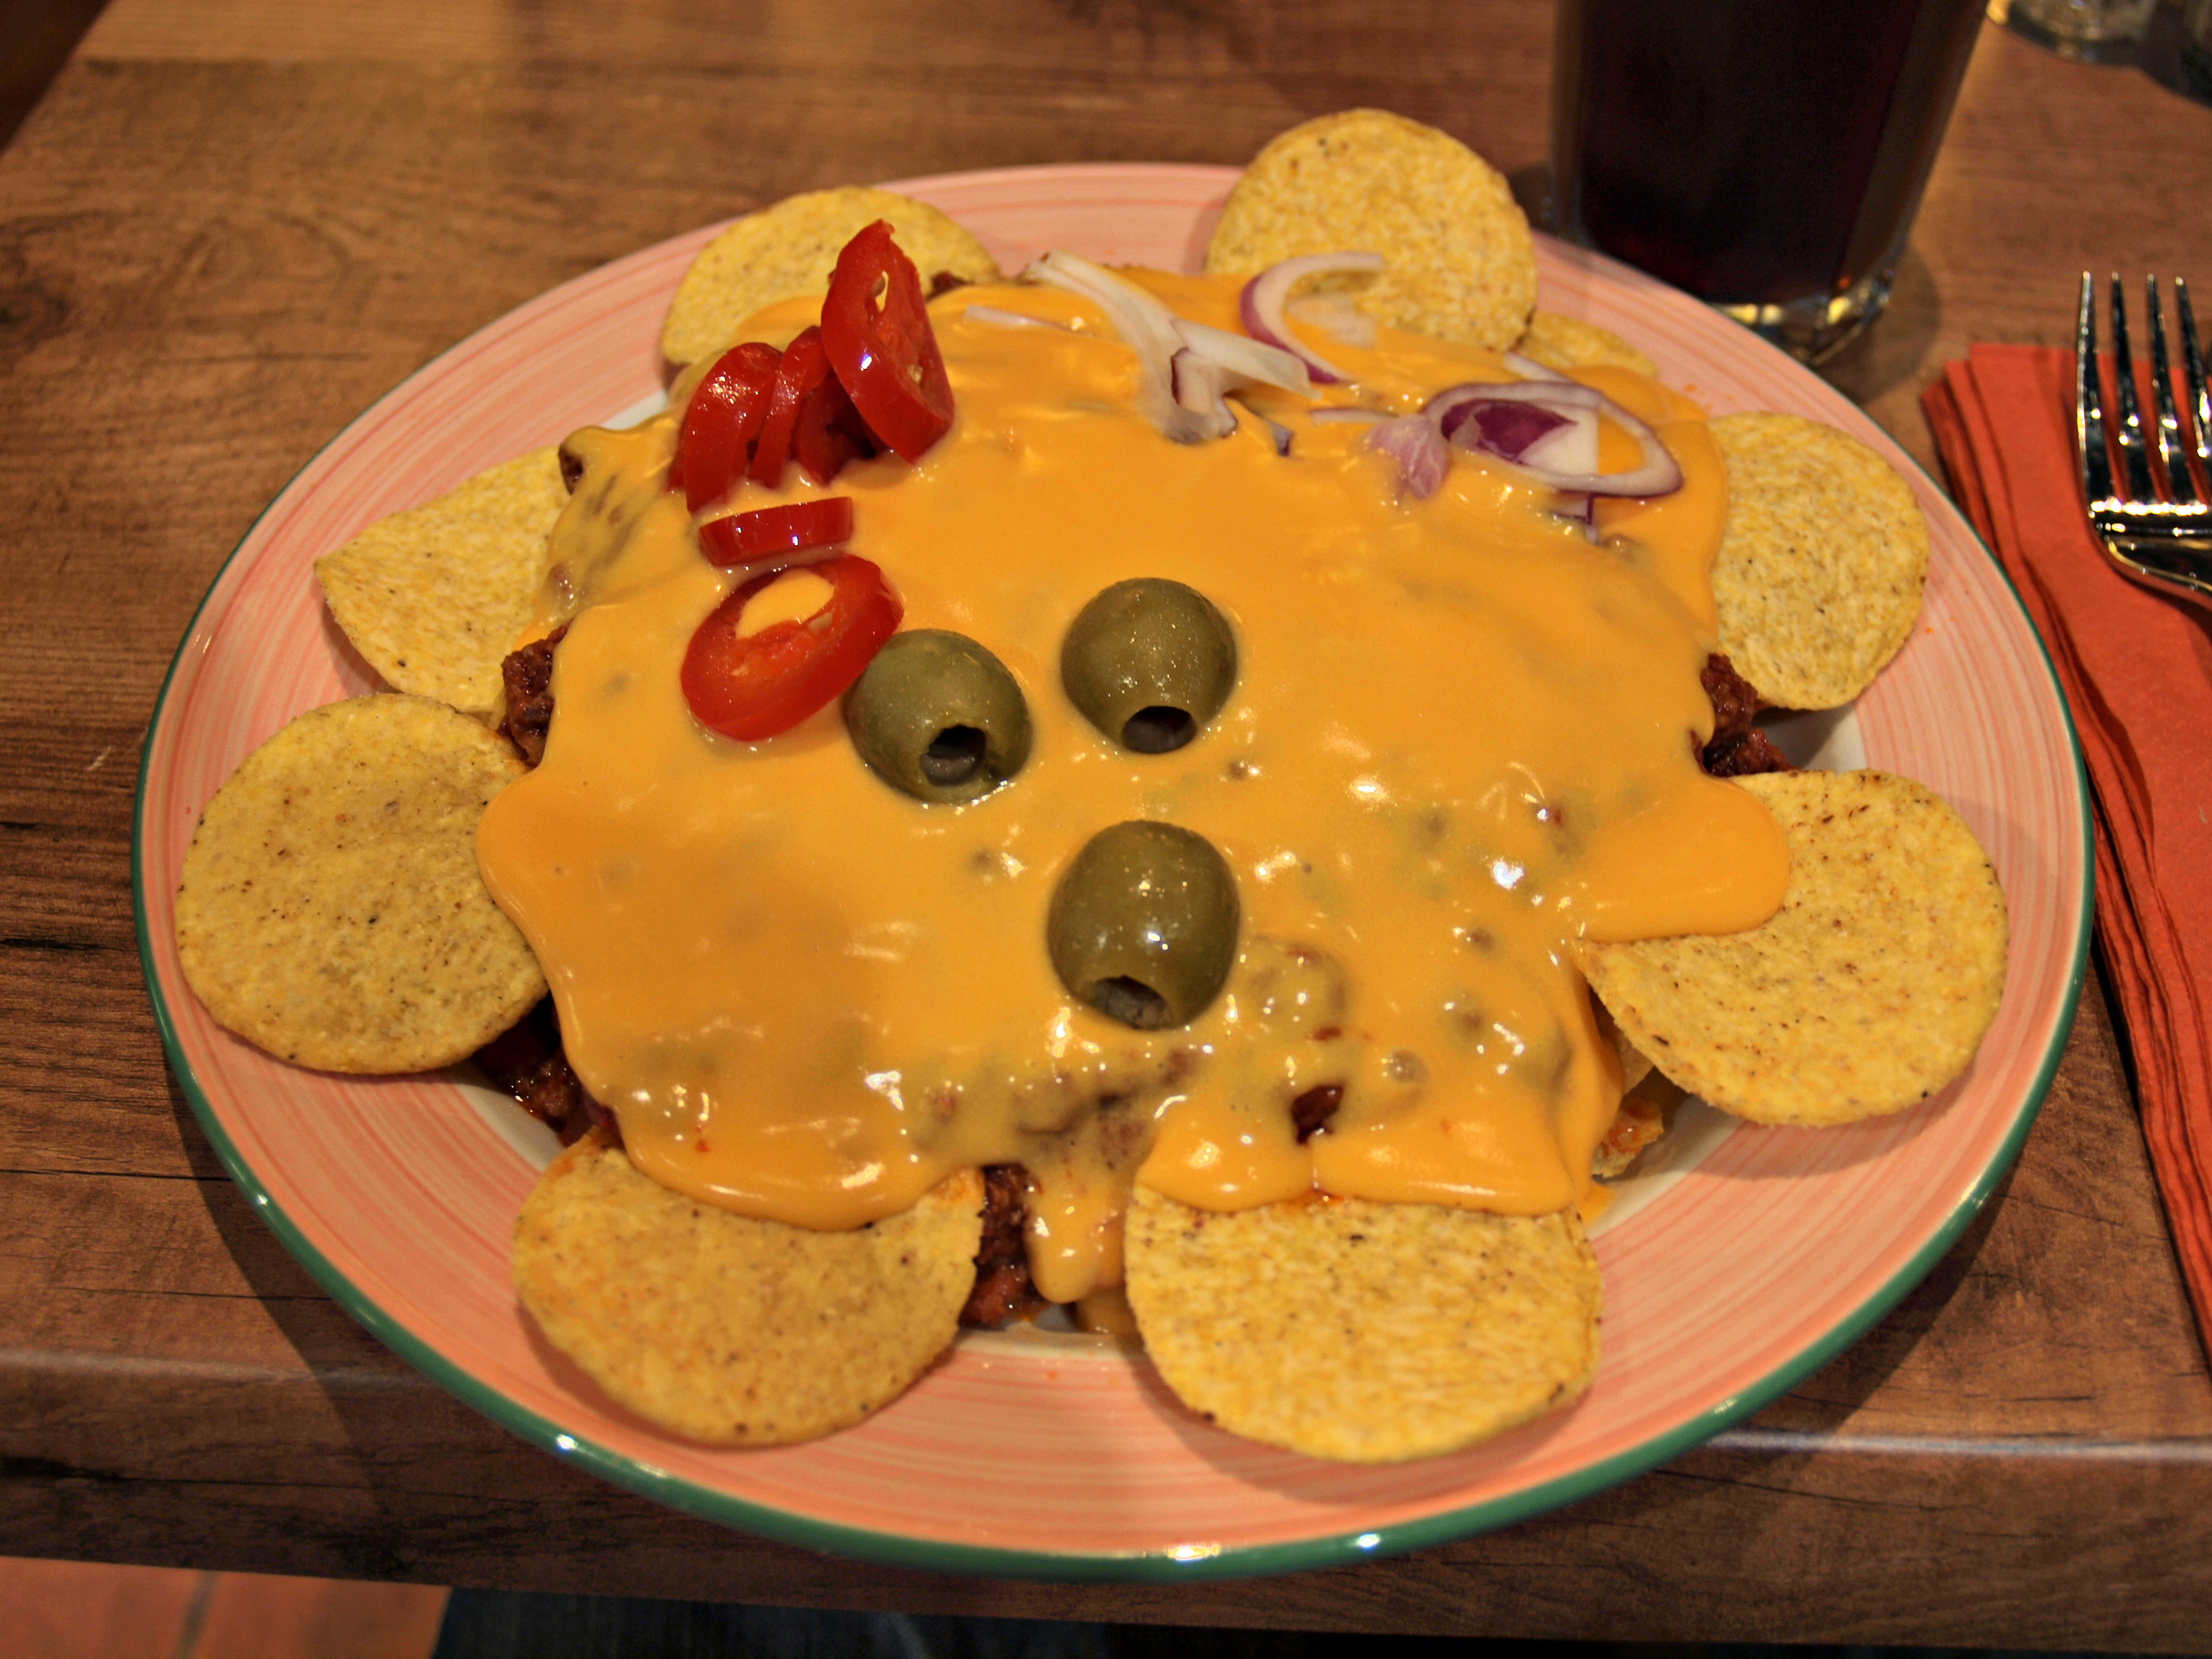 a portion of Nachos in a plate with cheese, olives and jalapenos